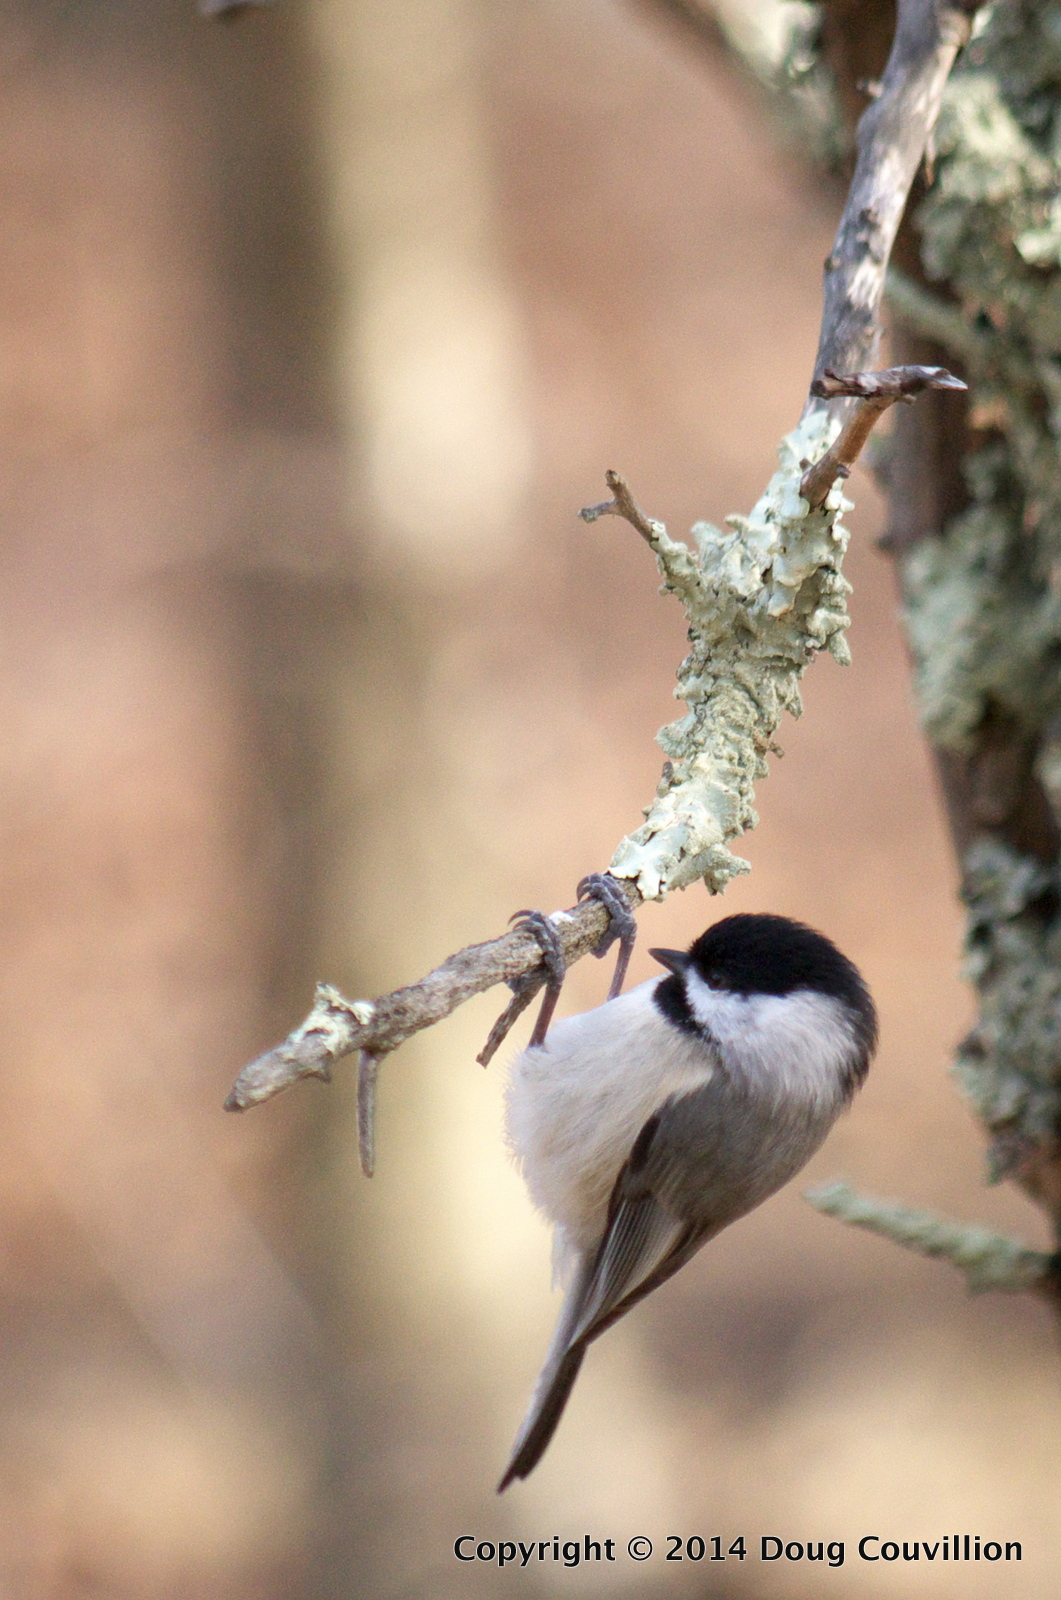 Photograph of a Carolina Chickadee hanging under a lichen covered branch